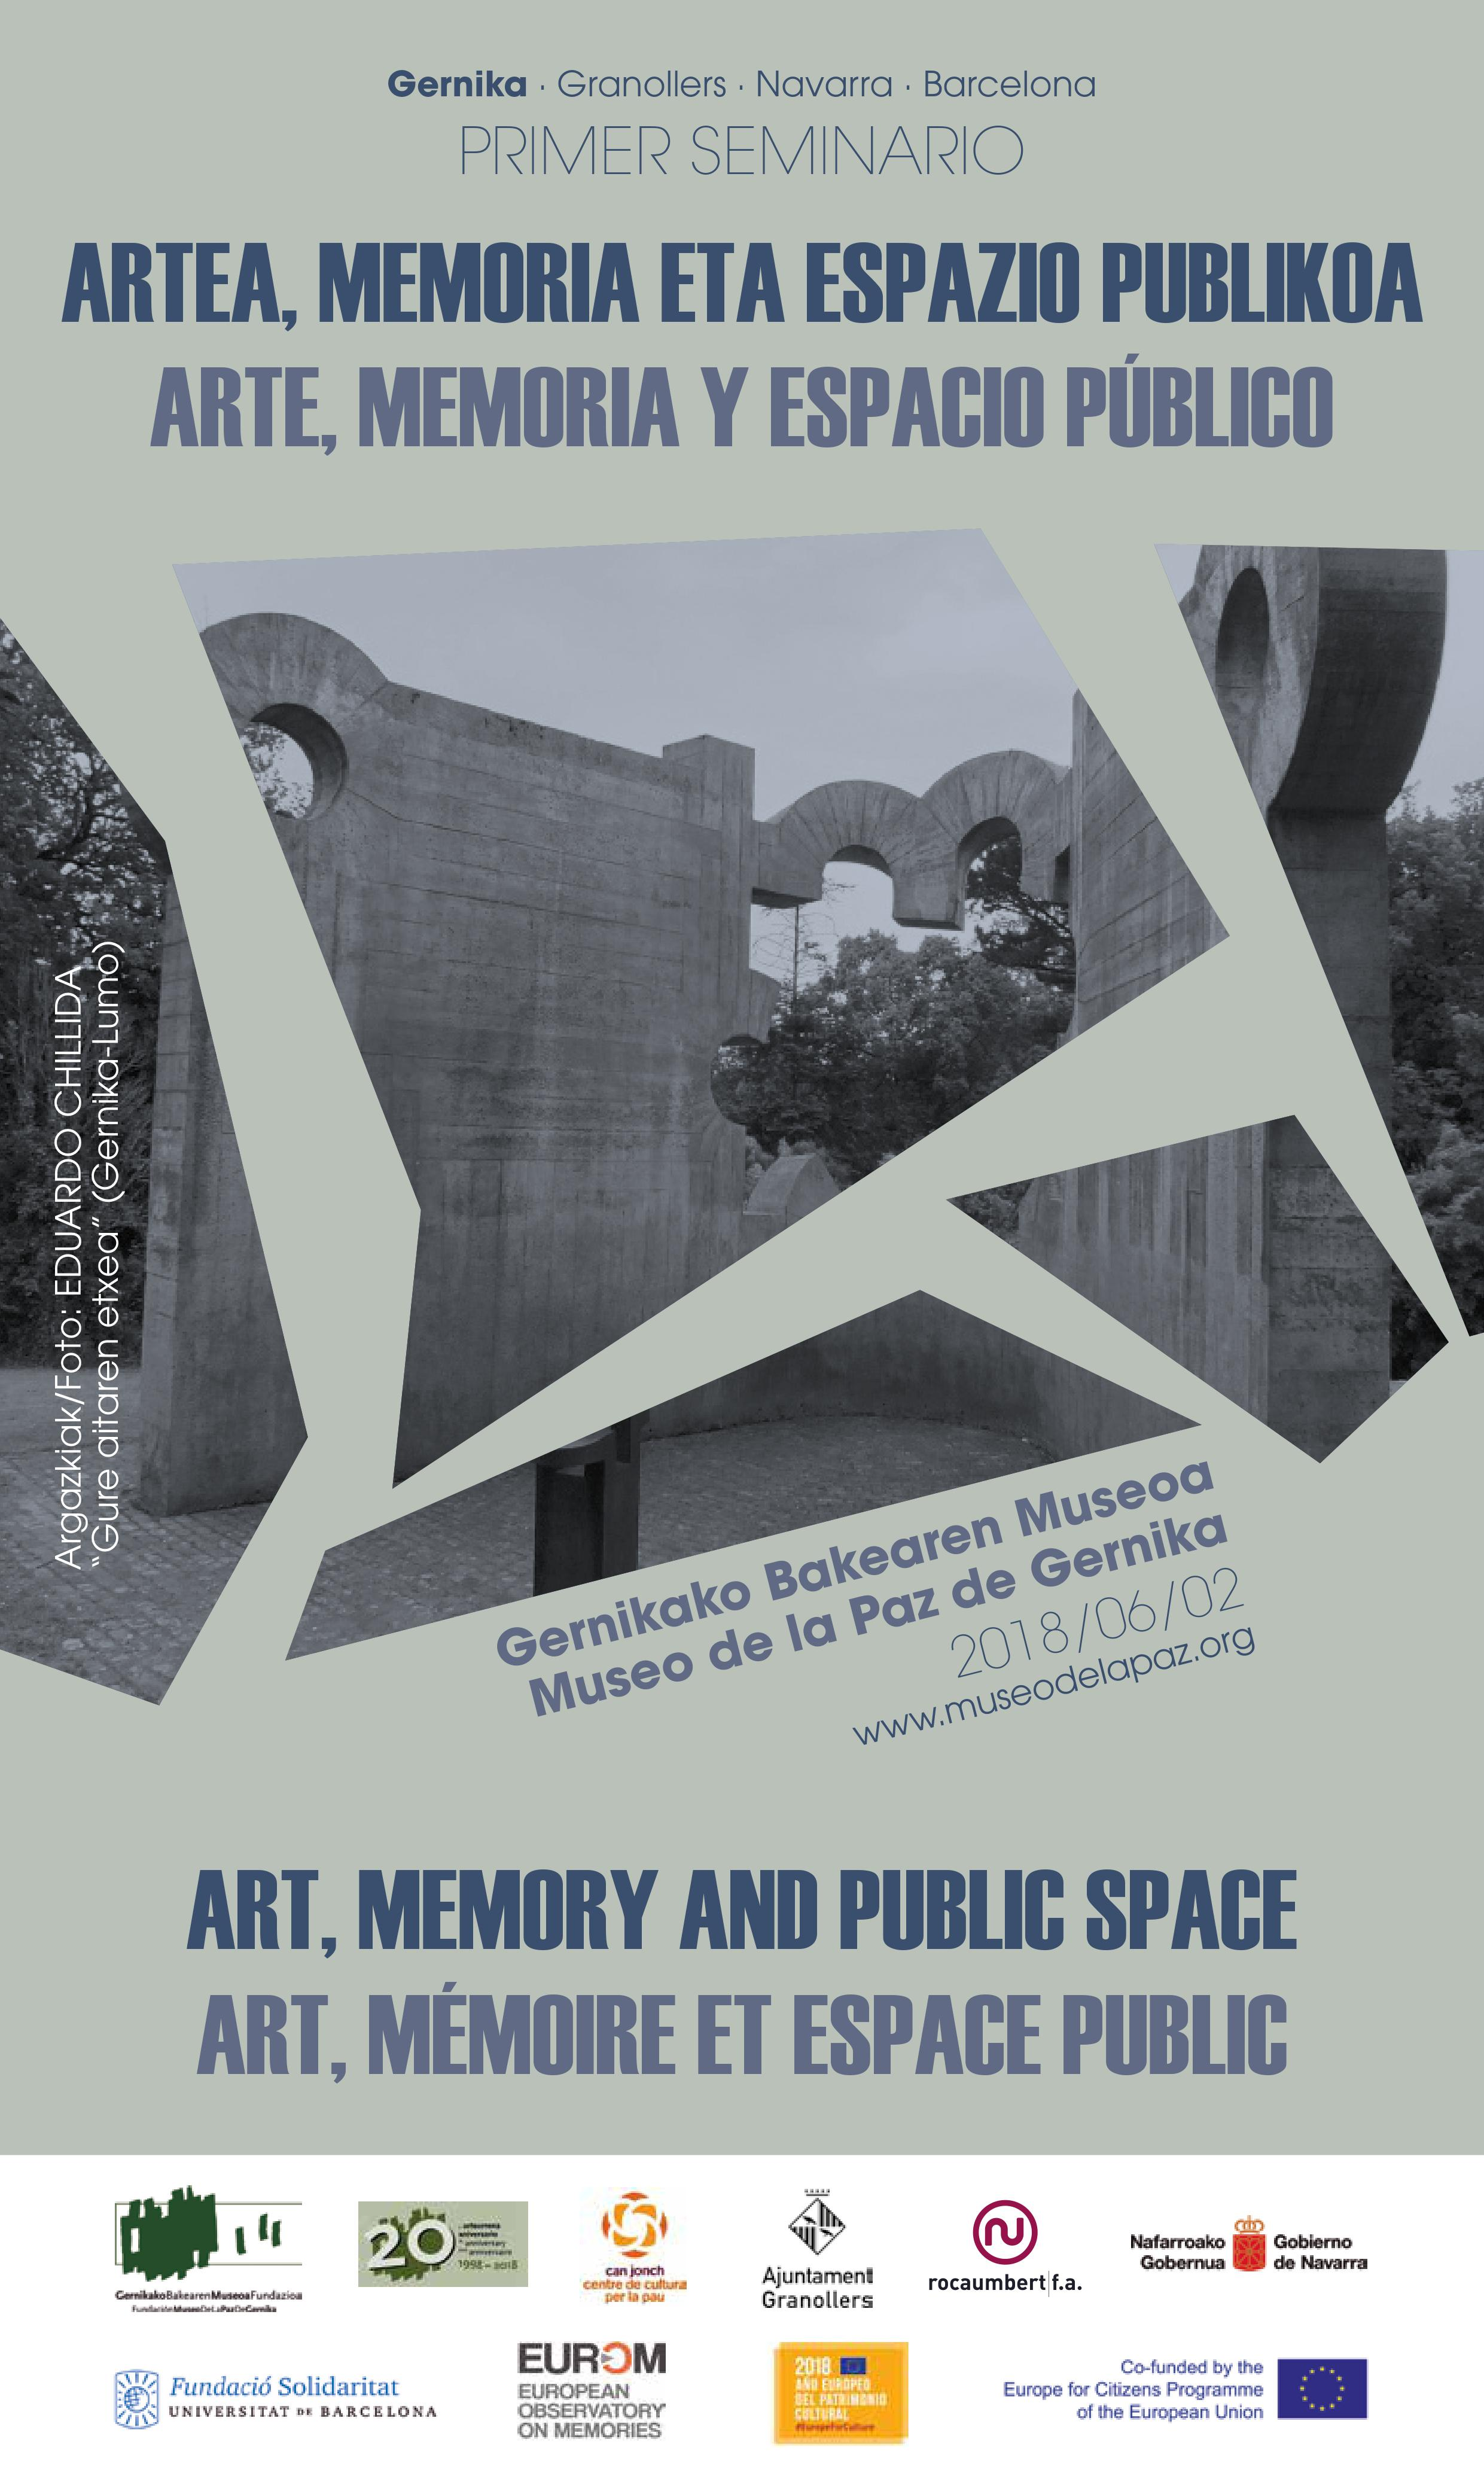 013a27d927690 Art, memory and public space - EUROM